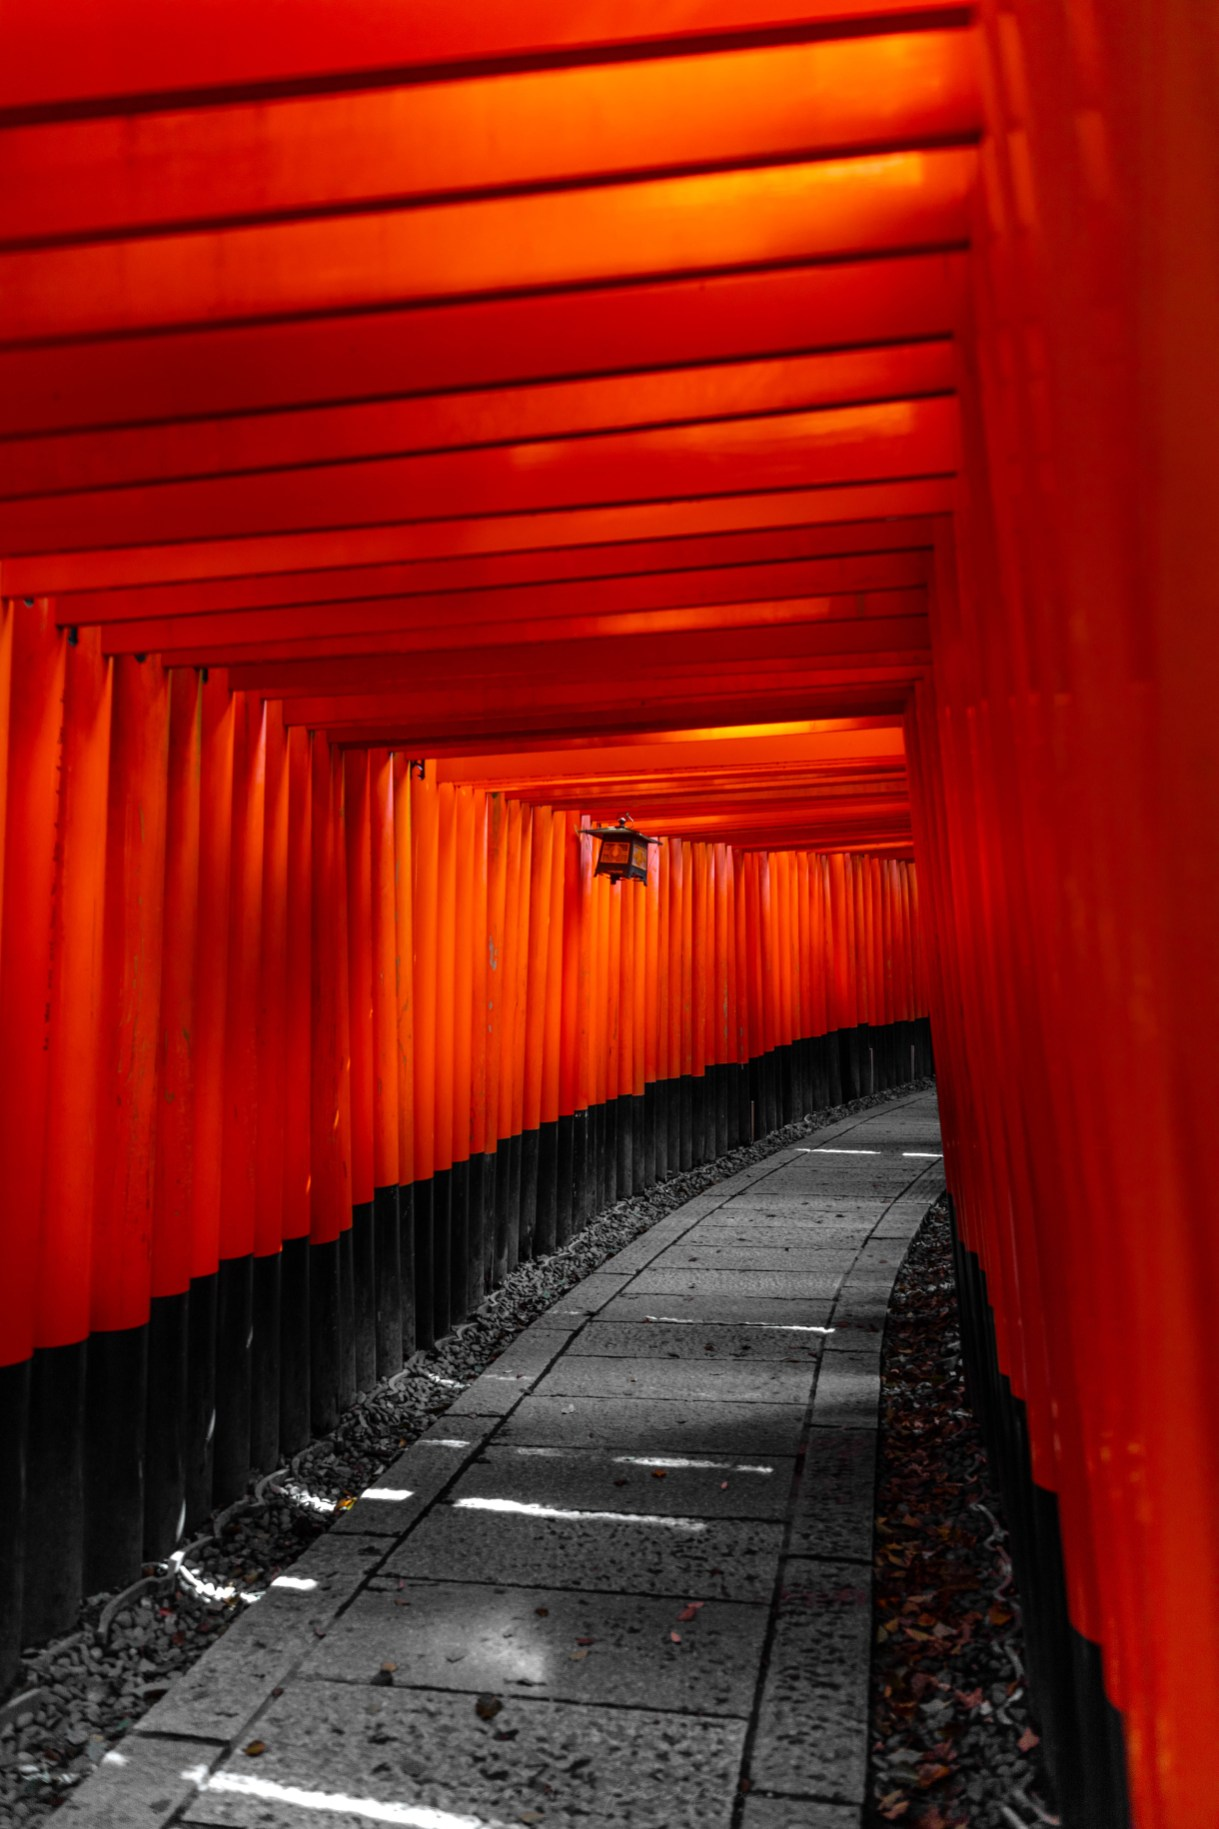 Fushimi Inari Taisha Shrine Thousands of Red Torii Gates in Kyoto Japan